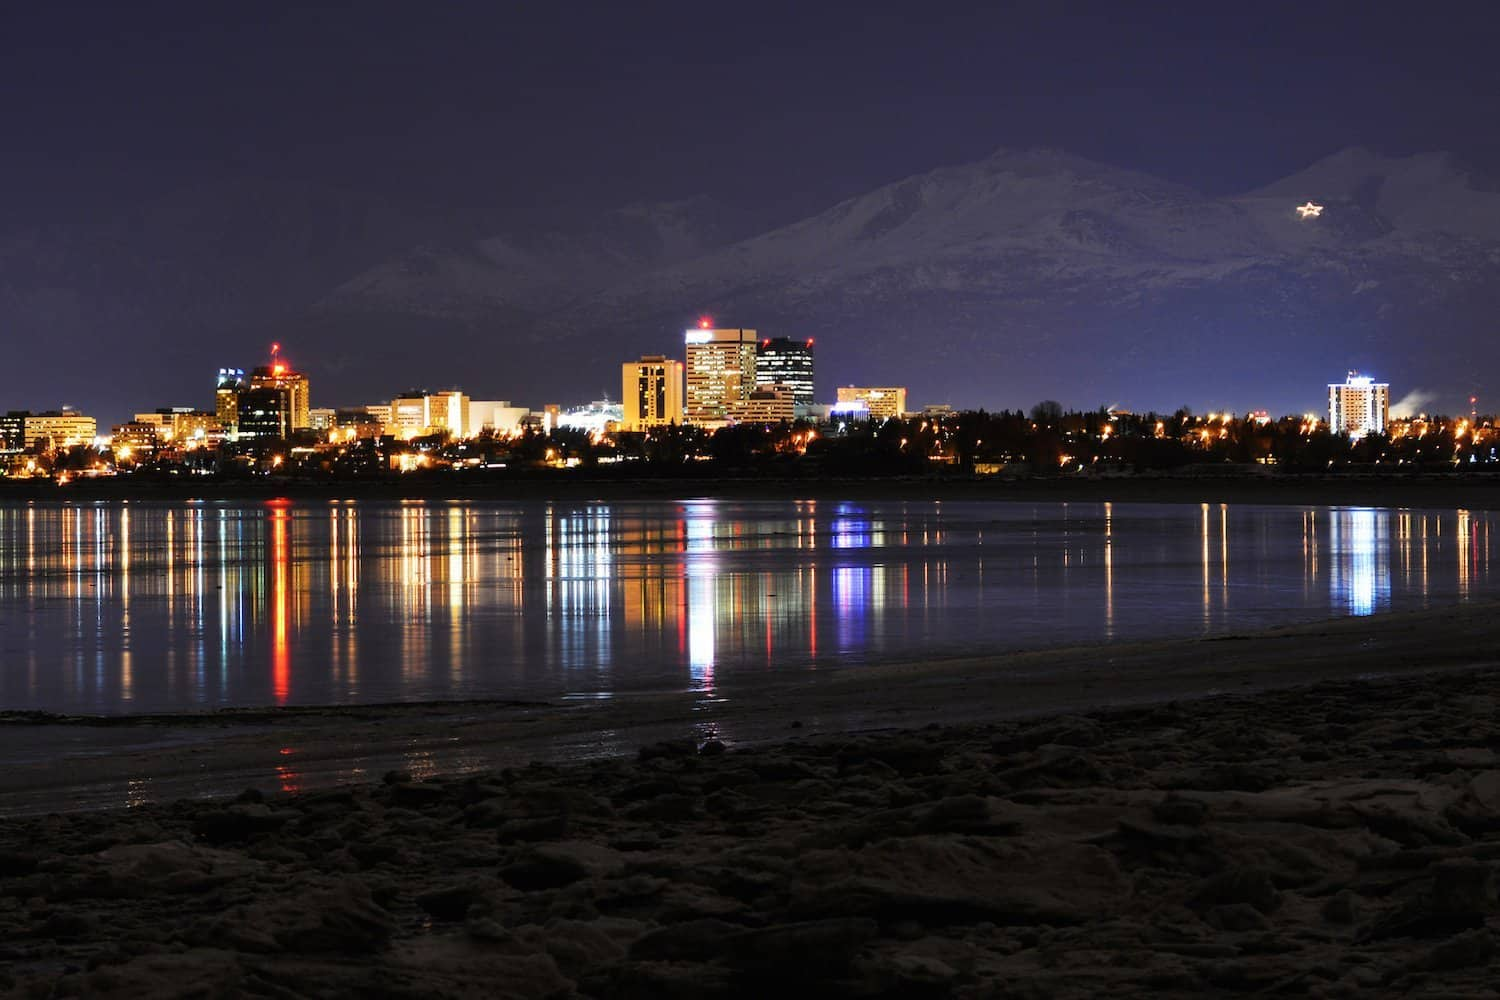 Stargazing in Anchorage - Paxson Woelber via Flickr